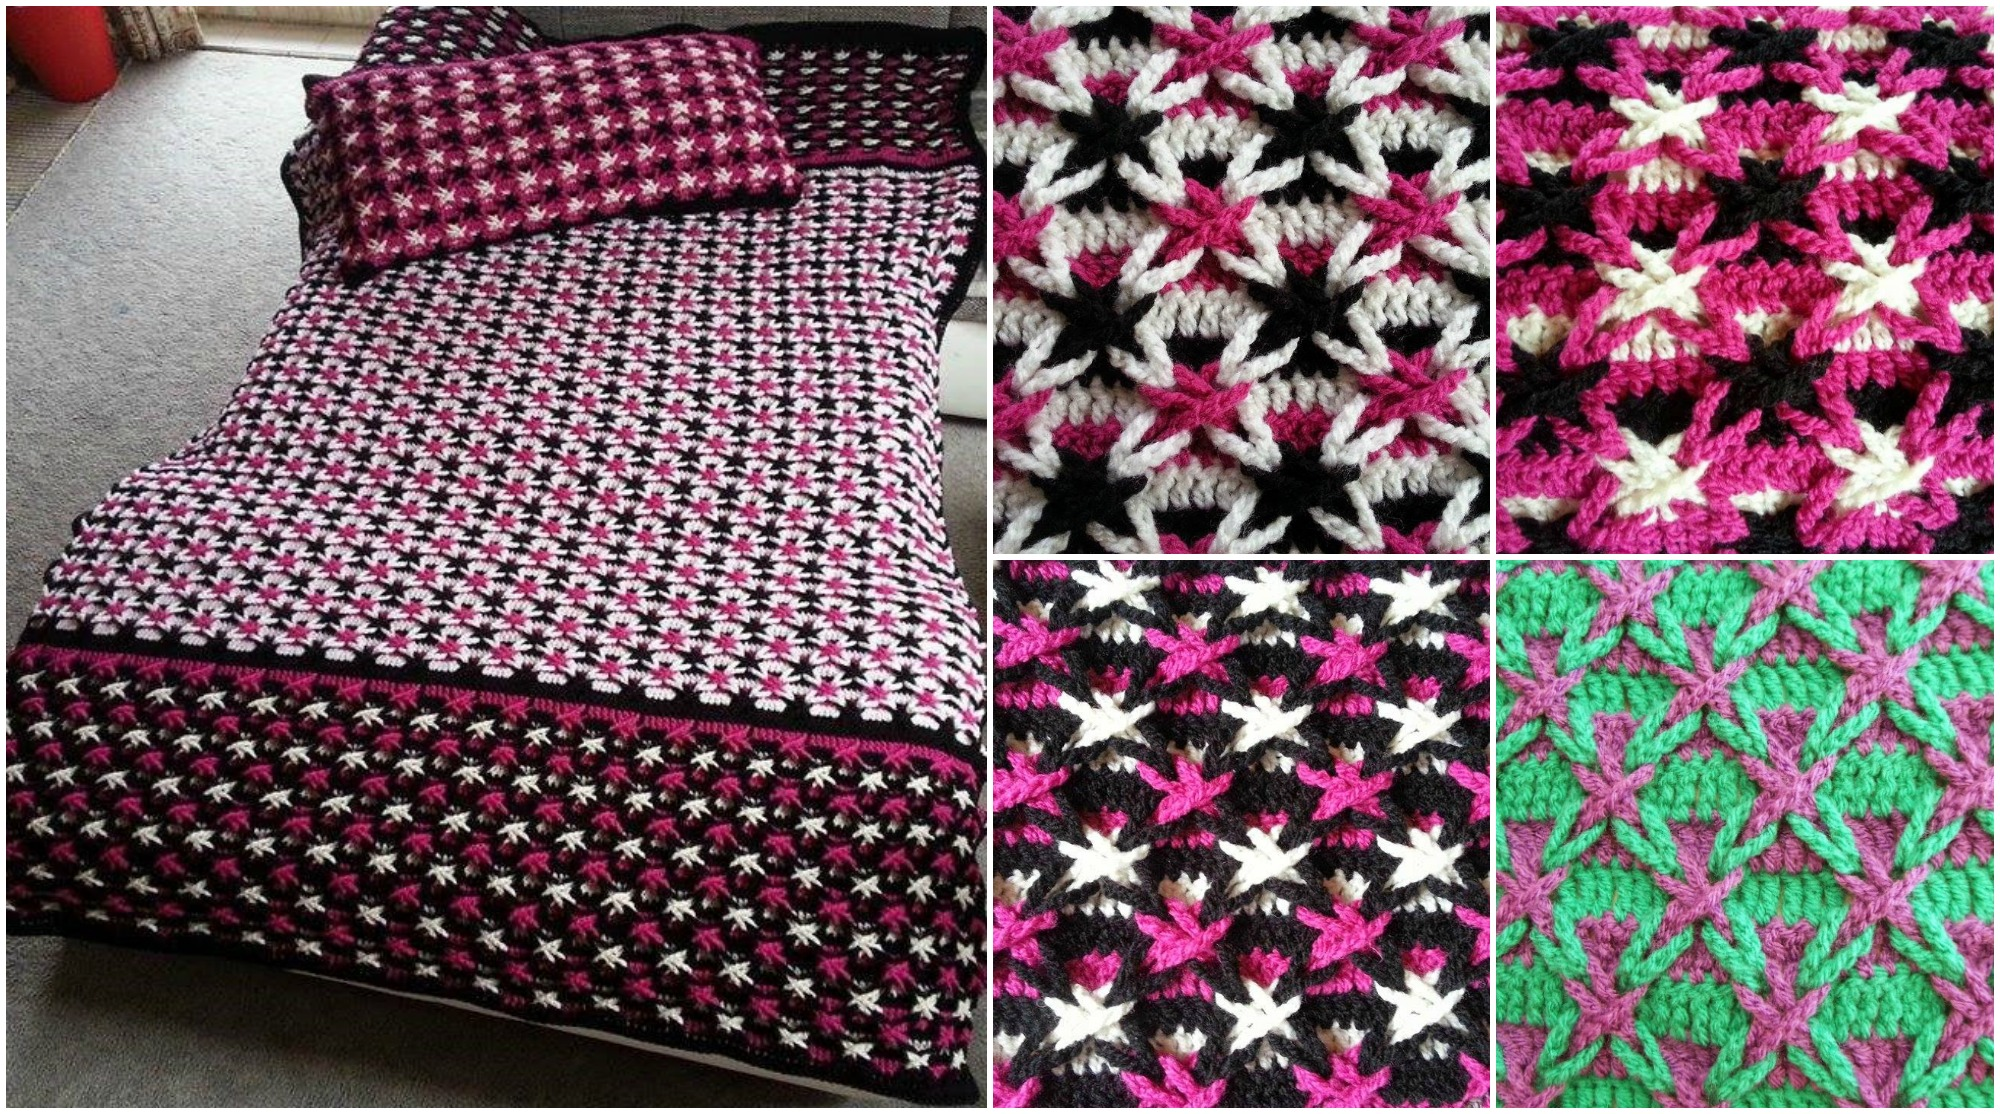 Polish Star Stitch Blanket